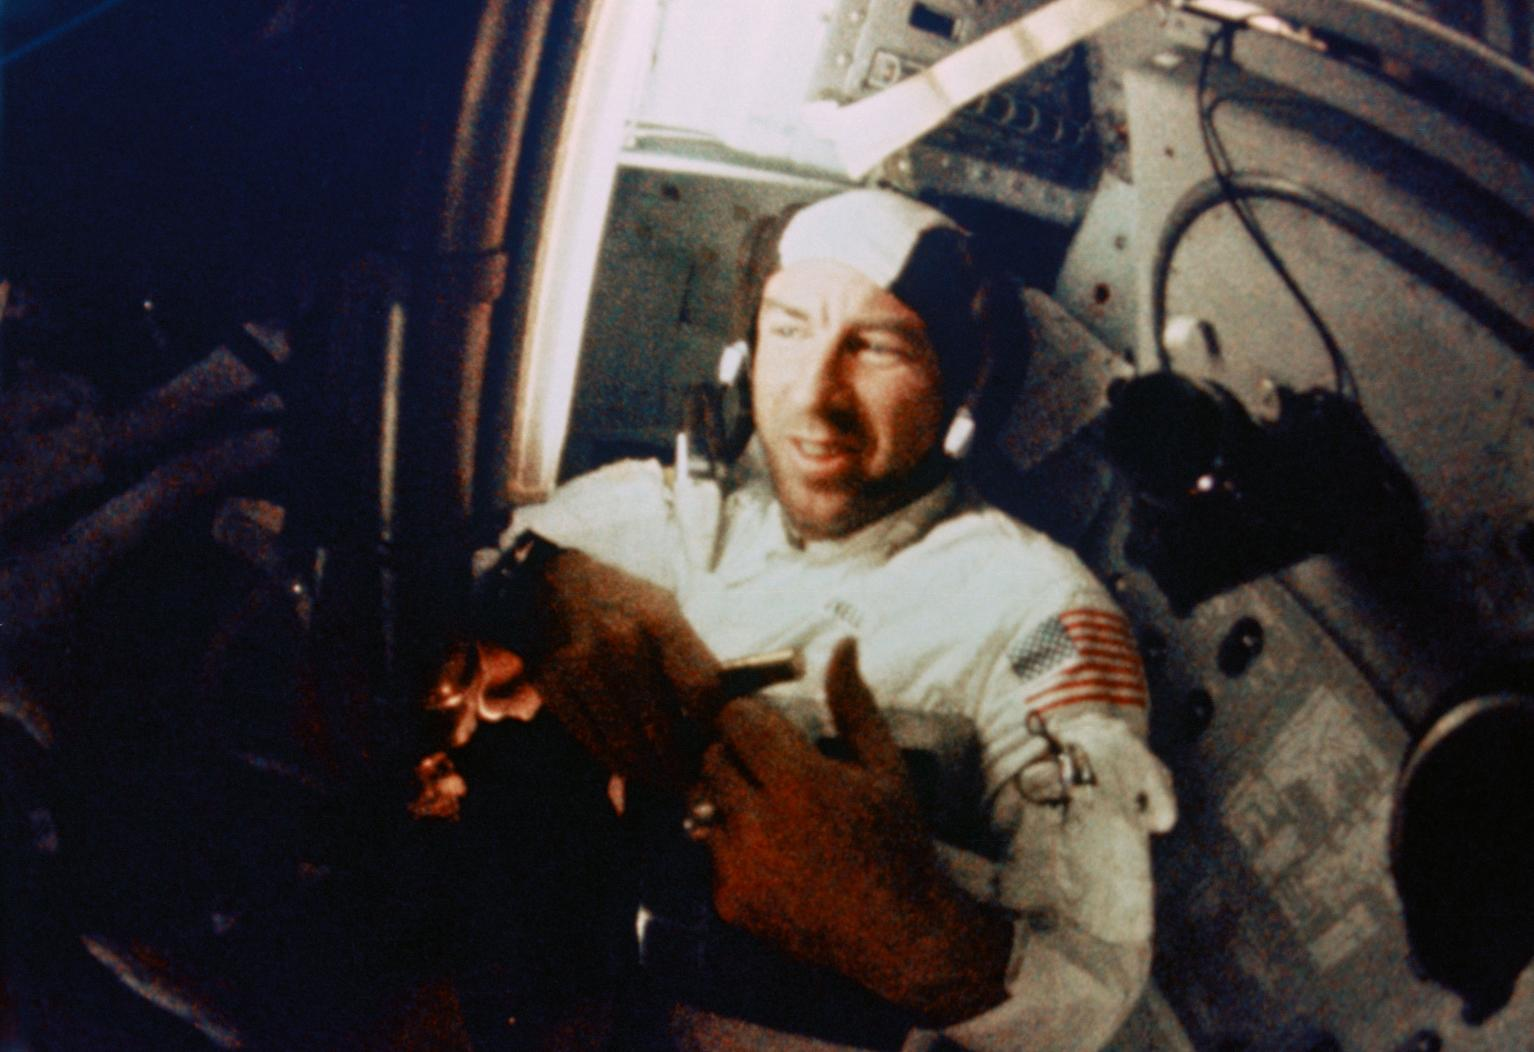 Jim Lovell in the Command Module